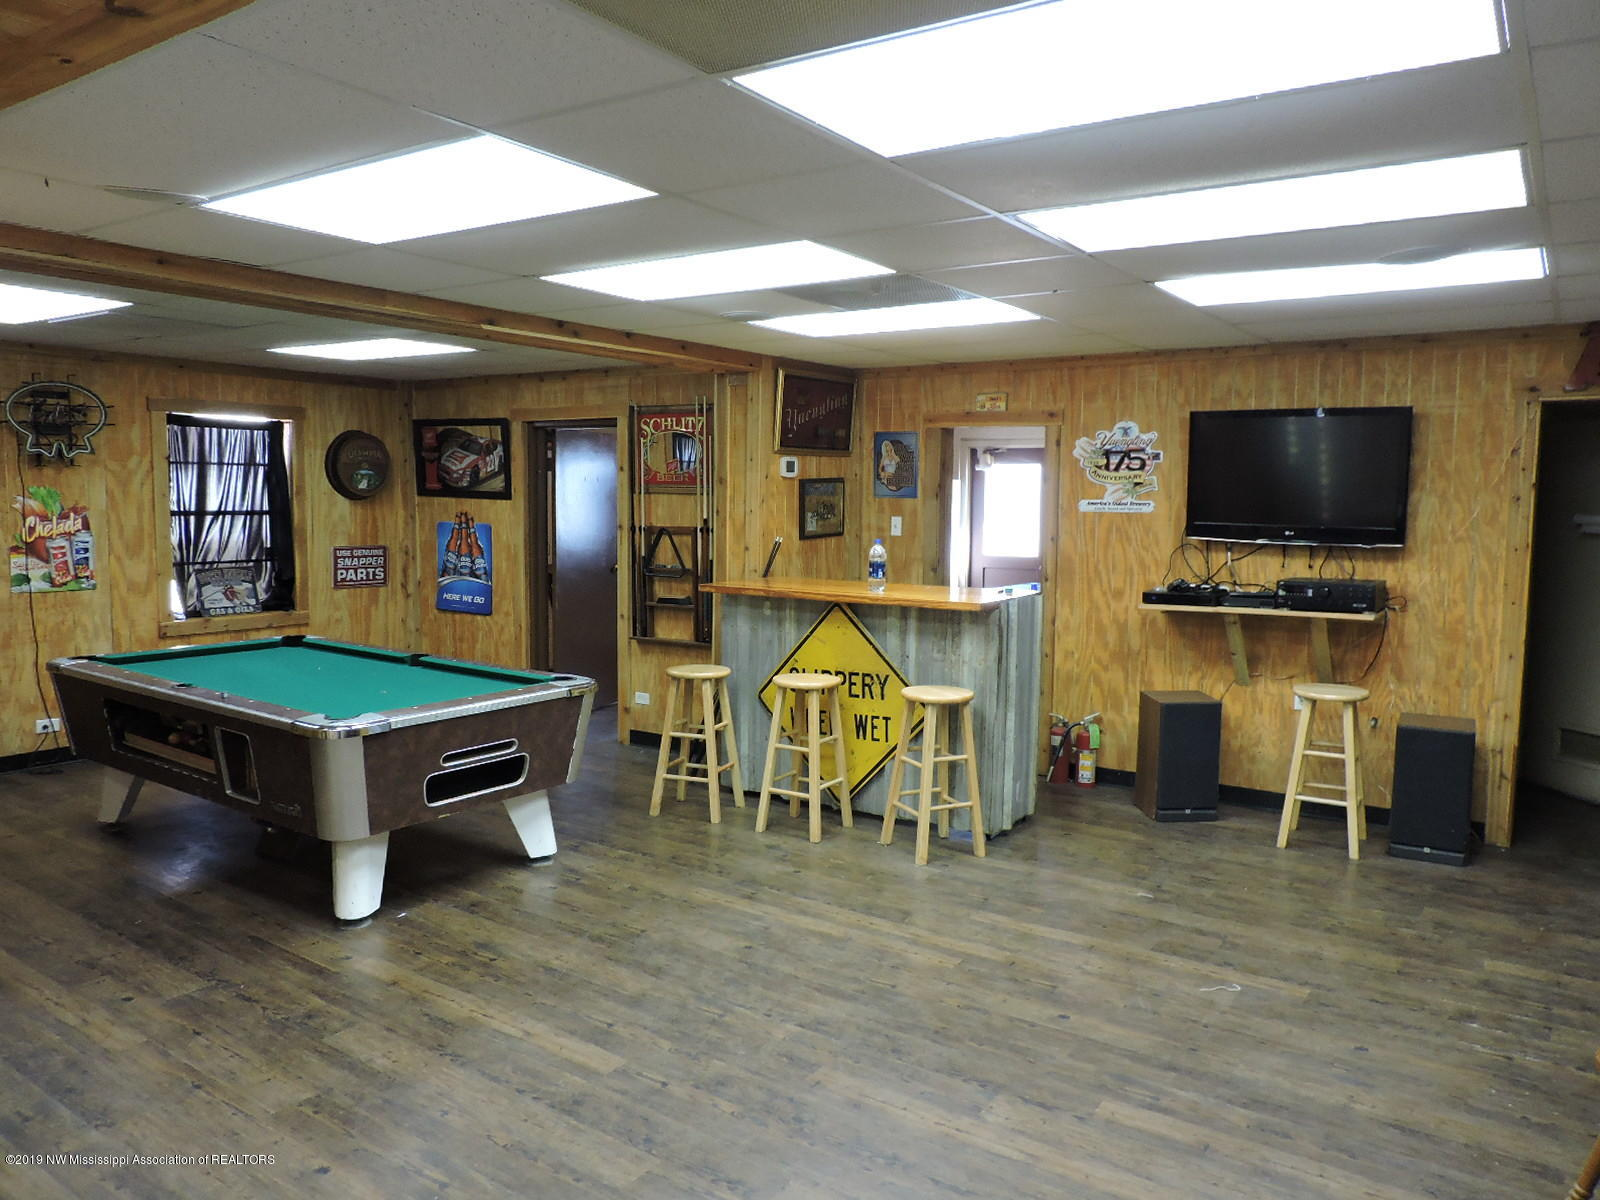 8600 Highway 178, Marshall, Mississippi 38611, ,Commercial,For Sale,Highway 178,325375